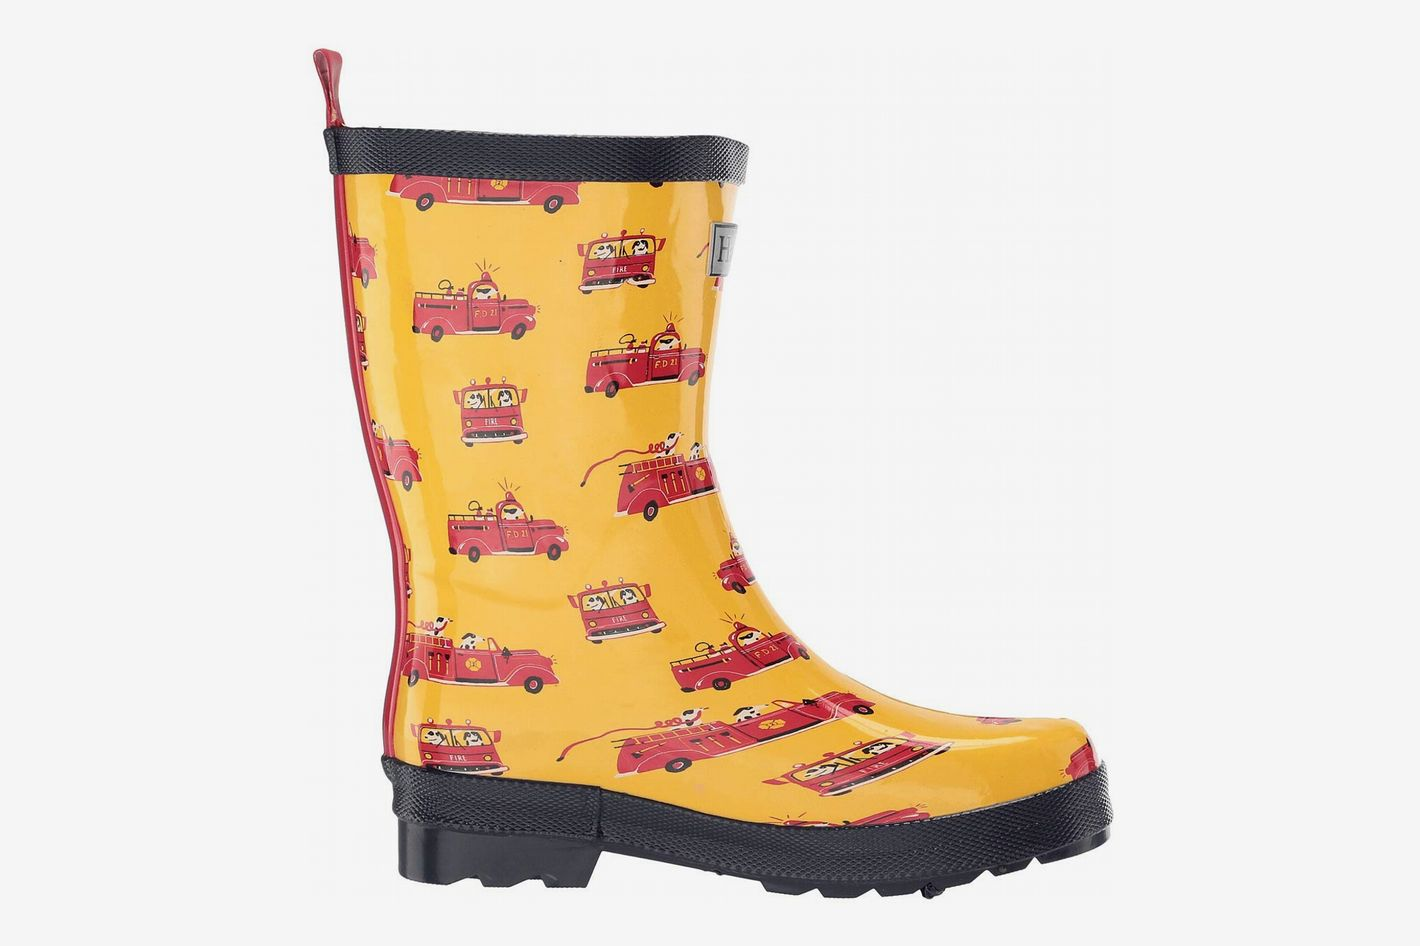 Hatley Kids Limited Edition Rain Boots